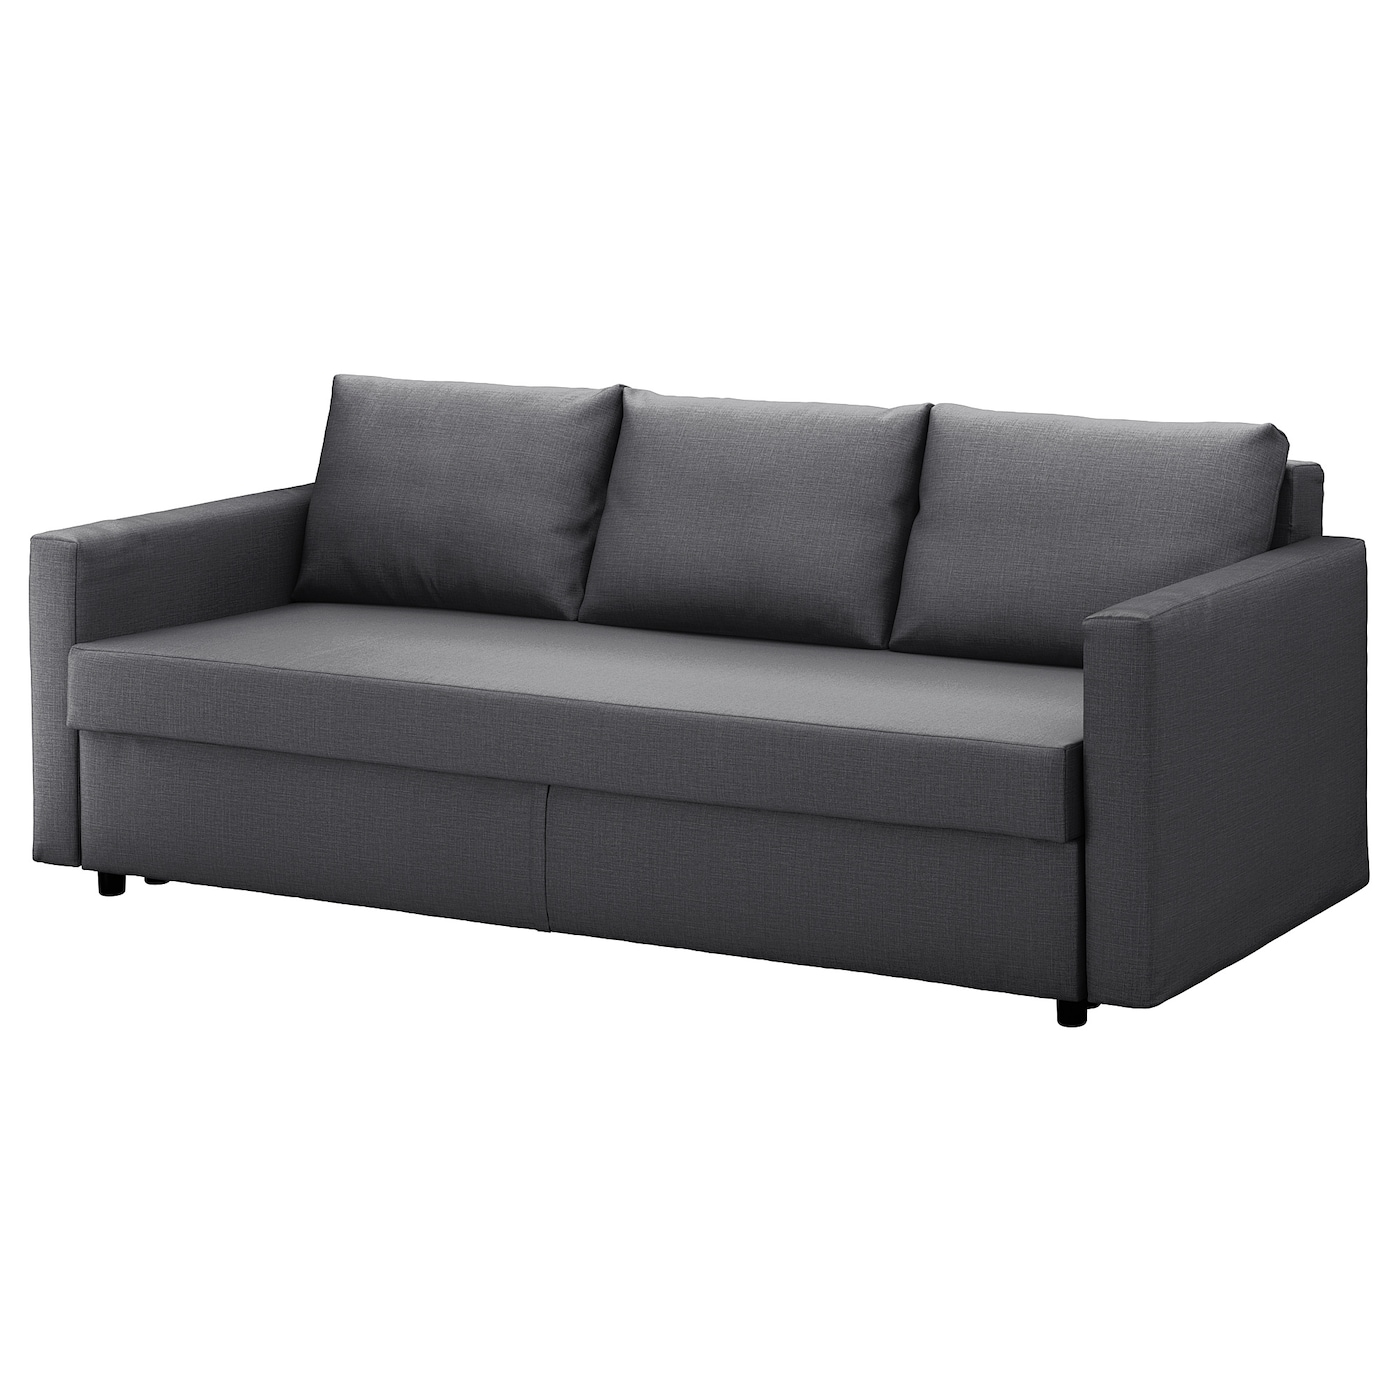 Magnificent Friheten Sleeper Sofa Skiftebo Dark Gray Best Image Libraries Weasiibadanjobscom